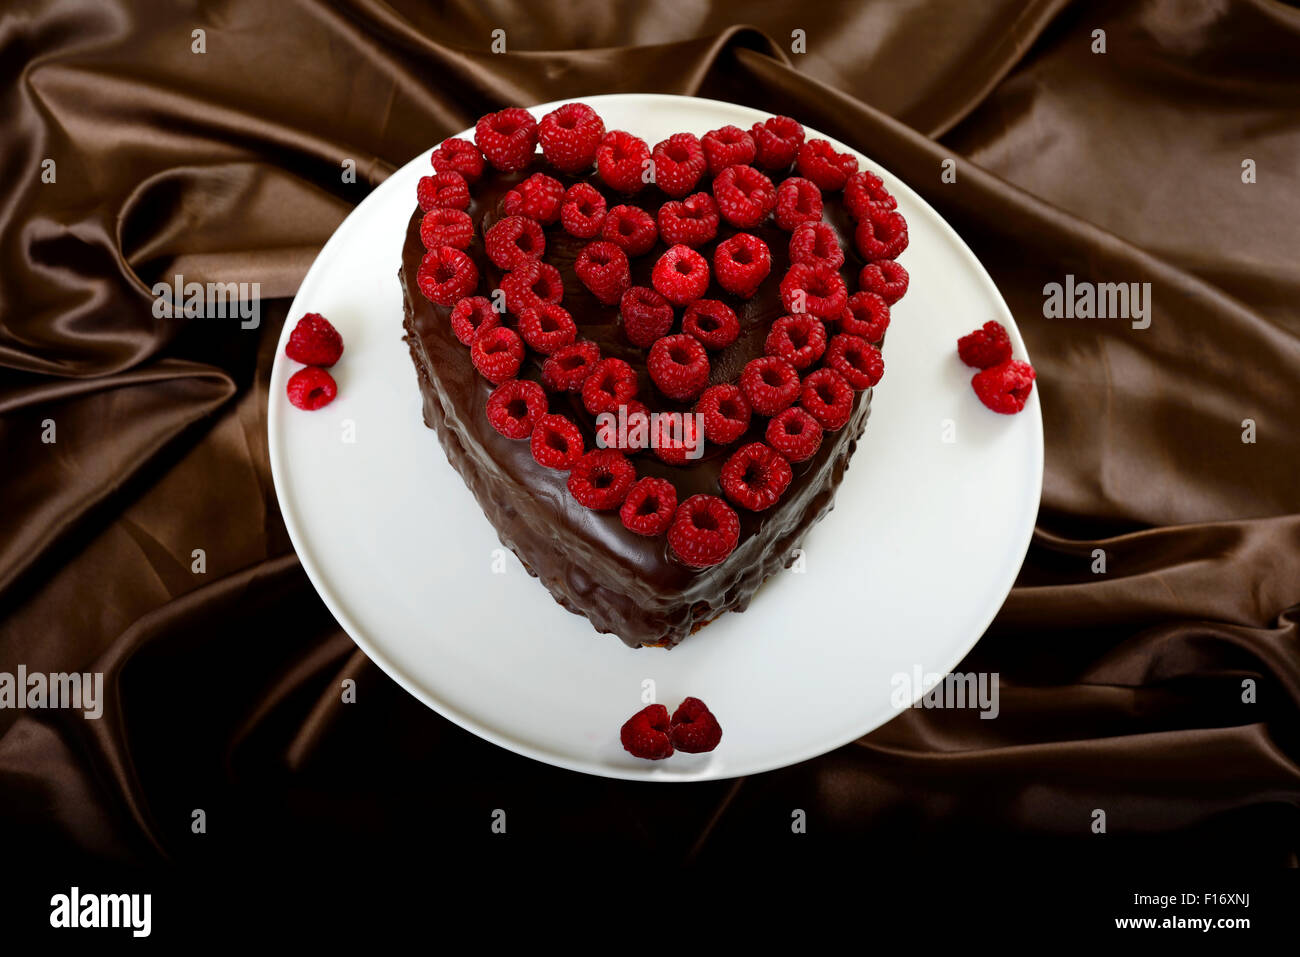 Valentines Heart Shaped Chocolate Cake Decorated With Raspberries